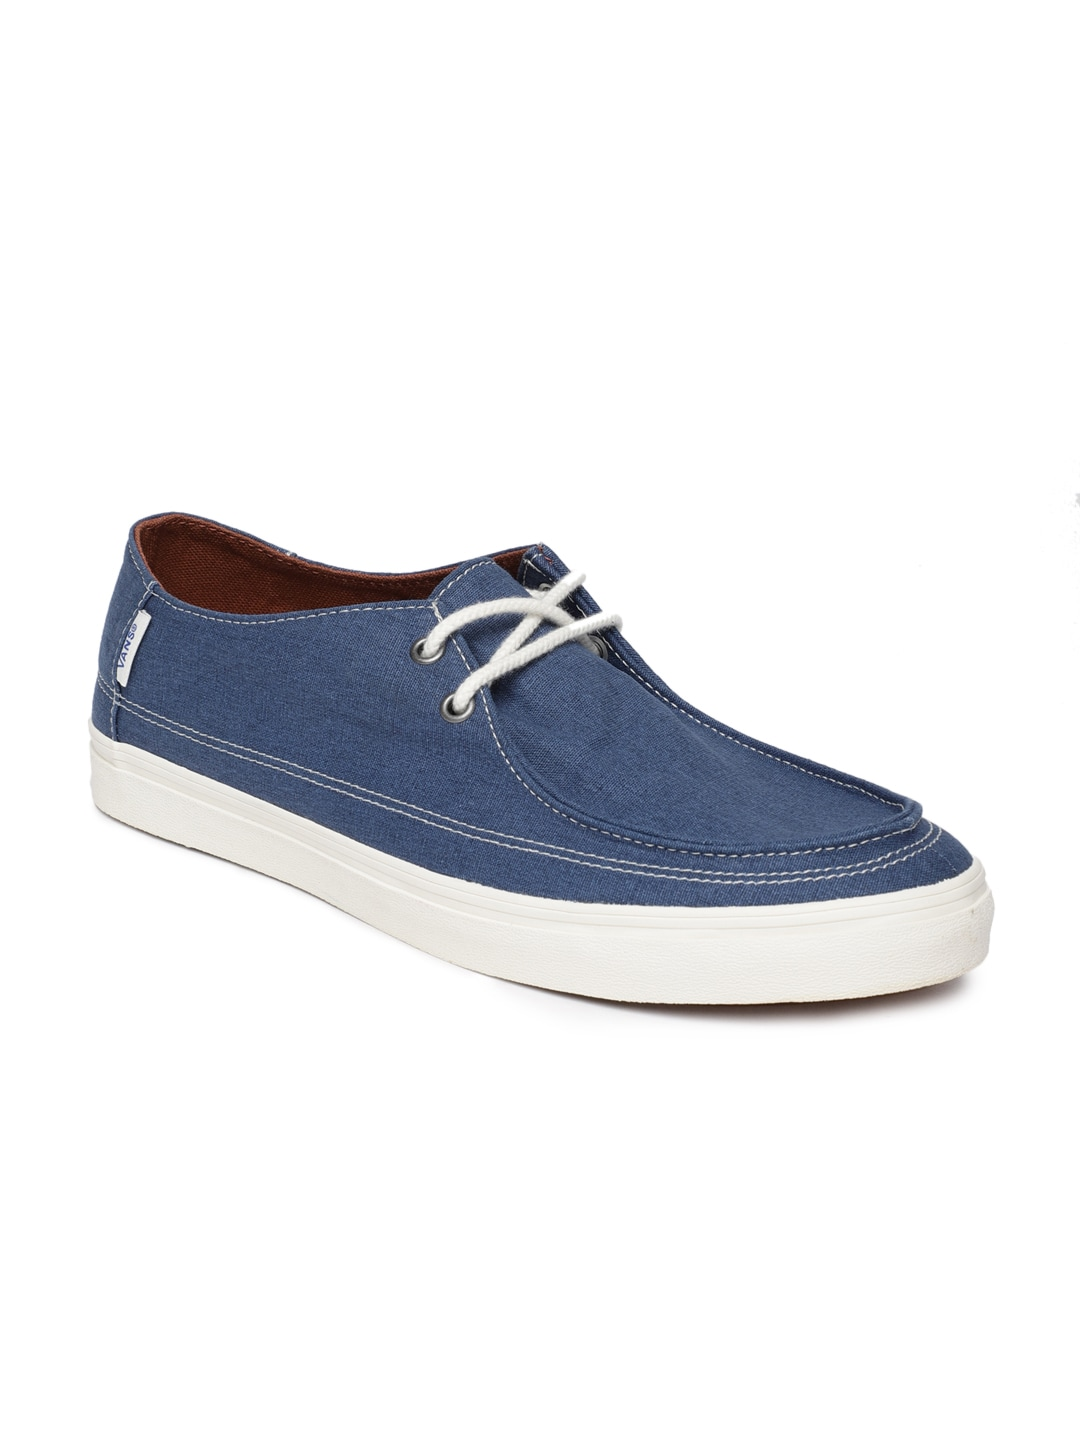 a972f5c636 Vans Casual Shoes - Buy Vans Casual Shoes Online in India